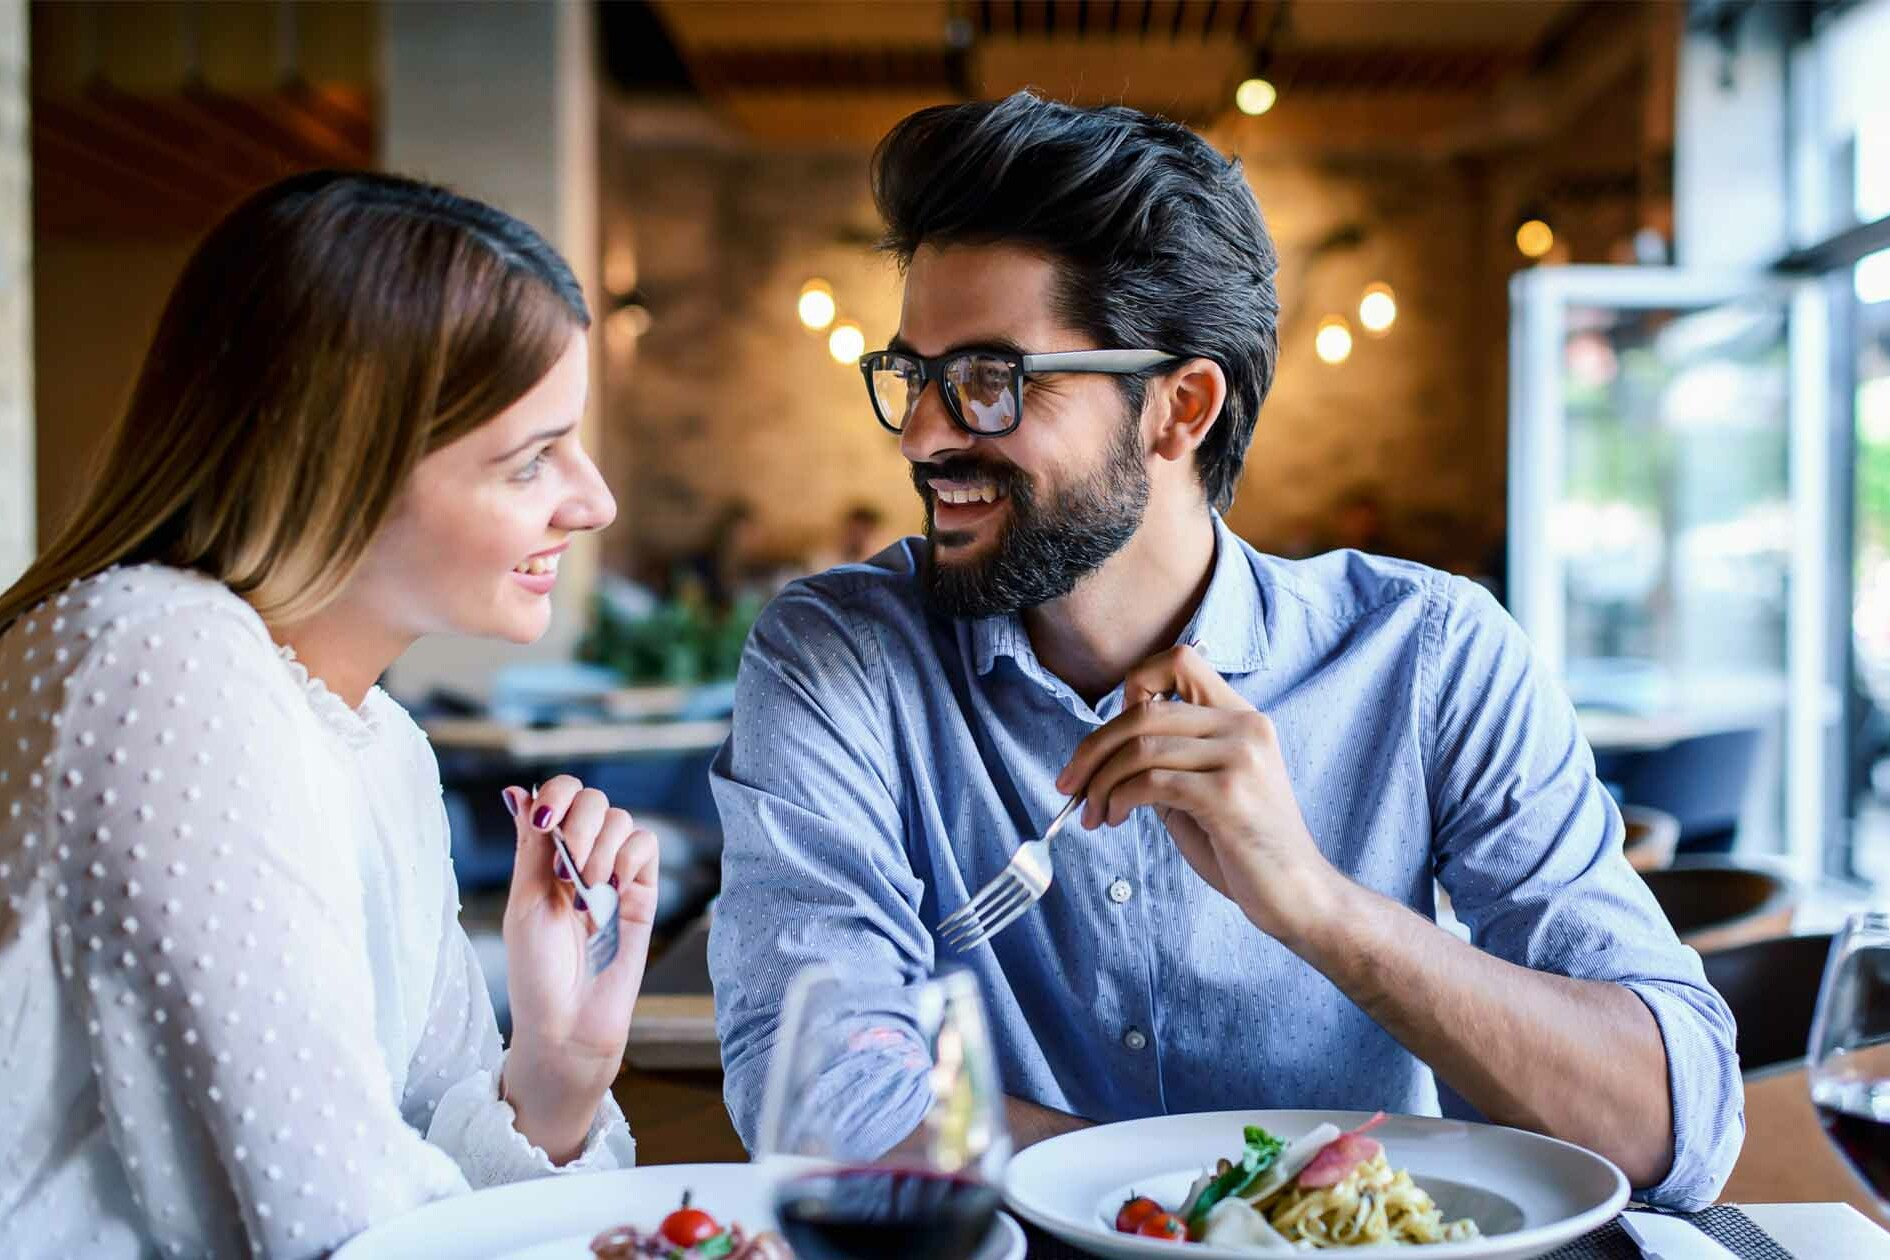 Couple Leans in Over Dinner - Decoding Body Language